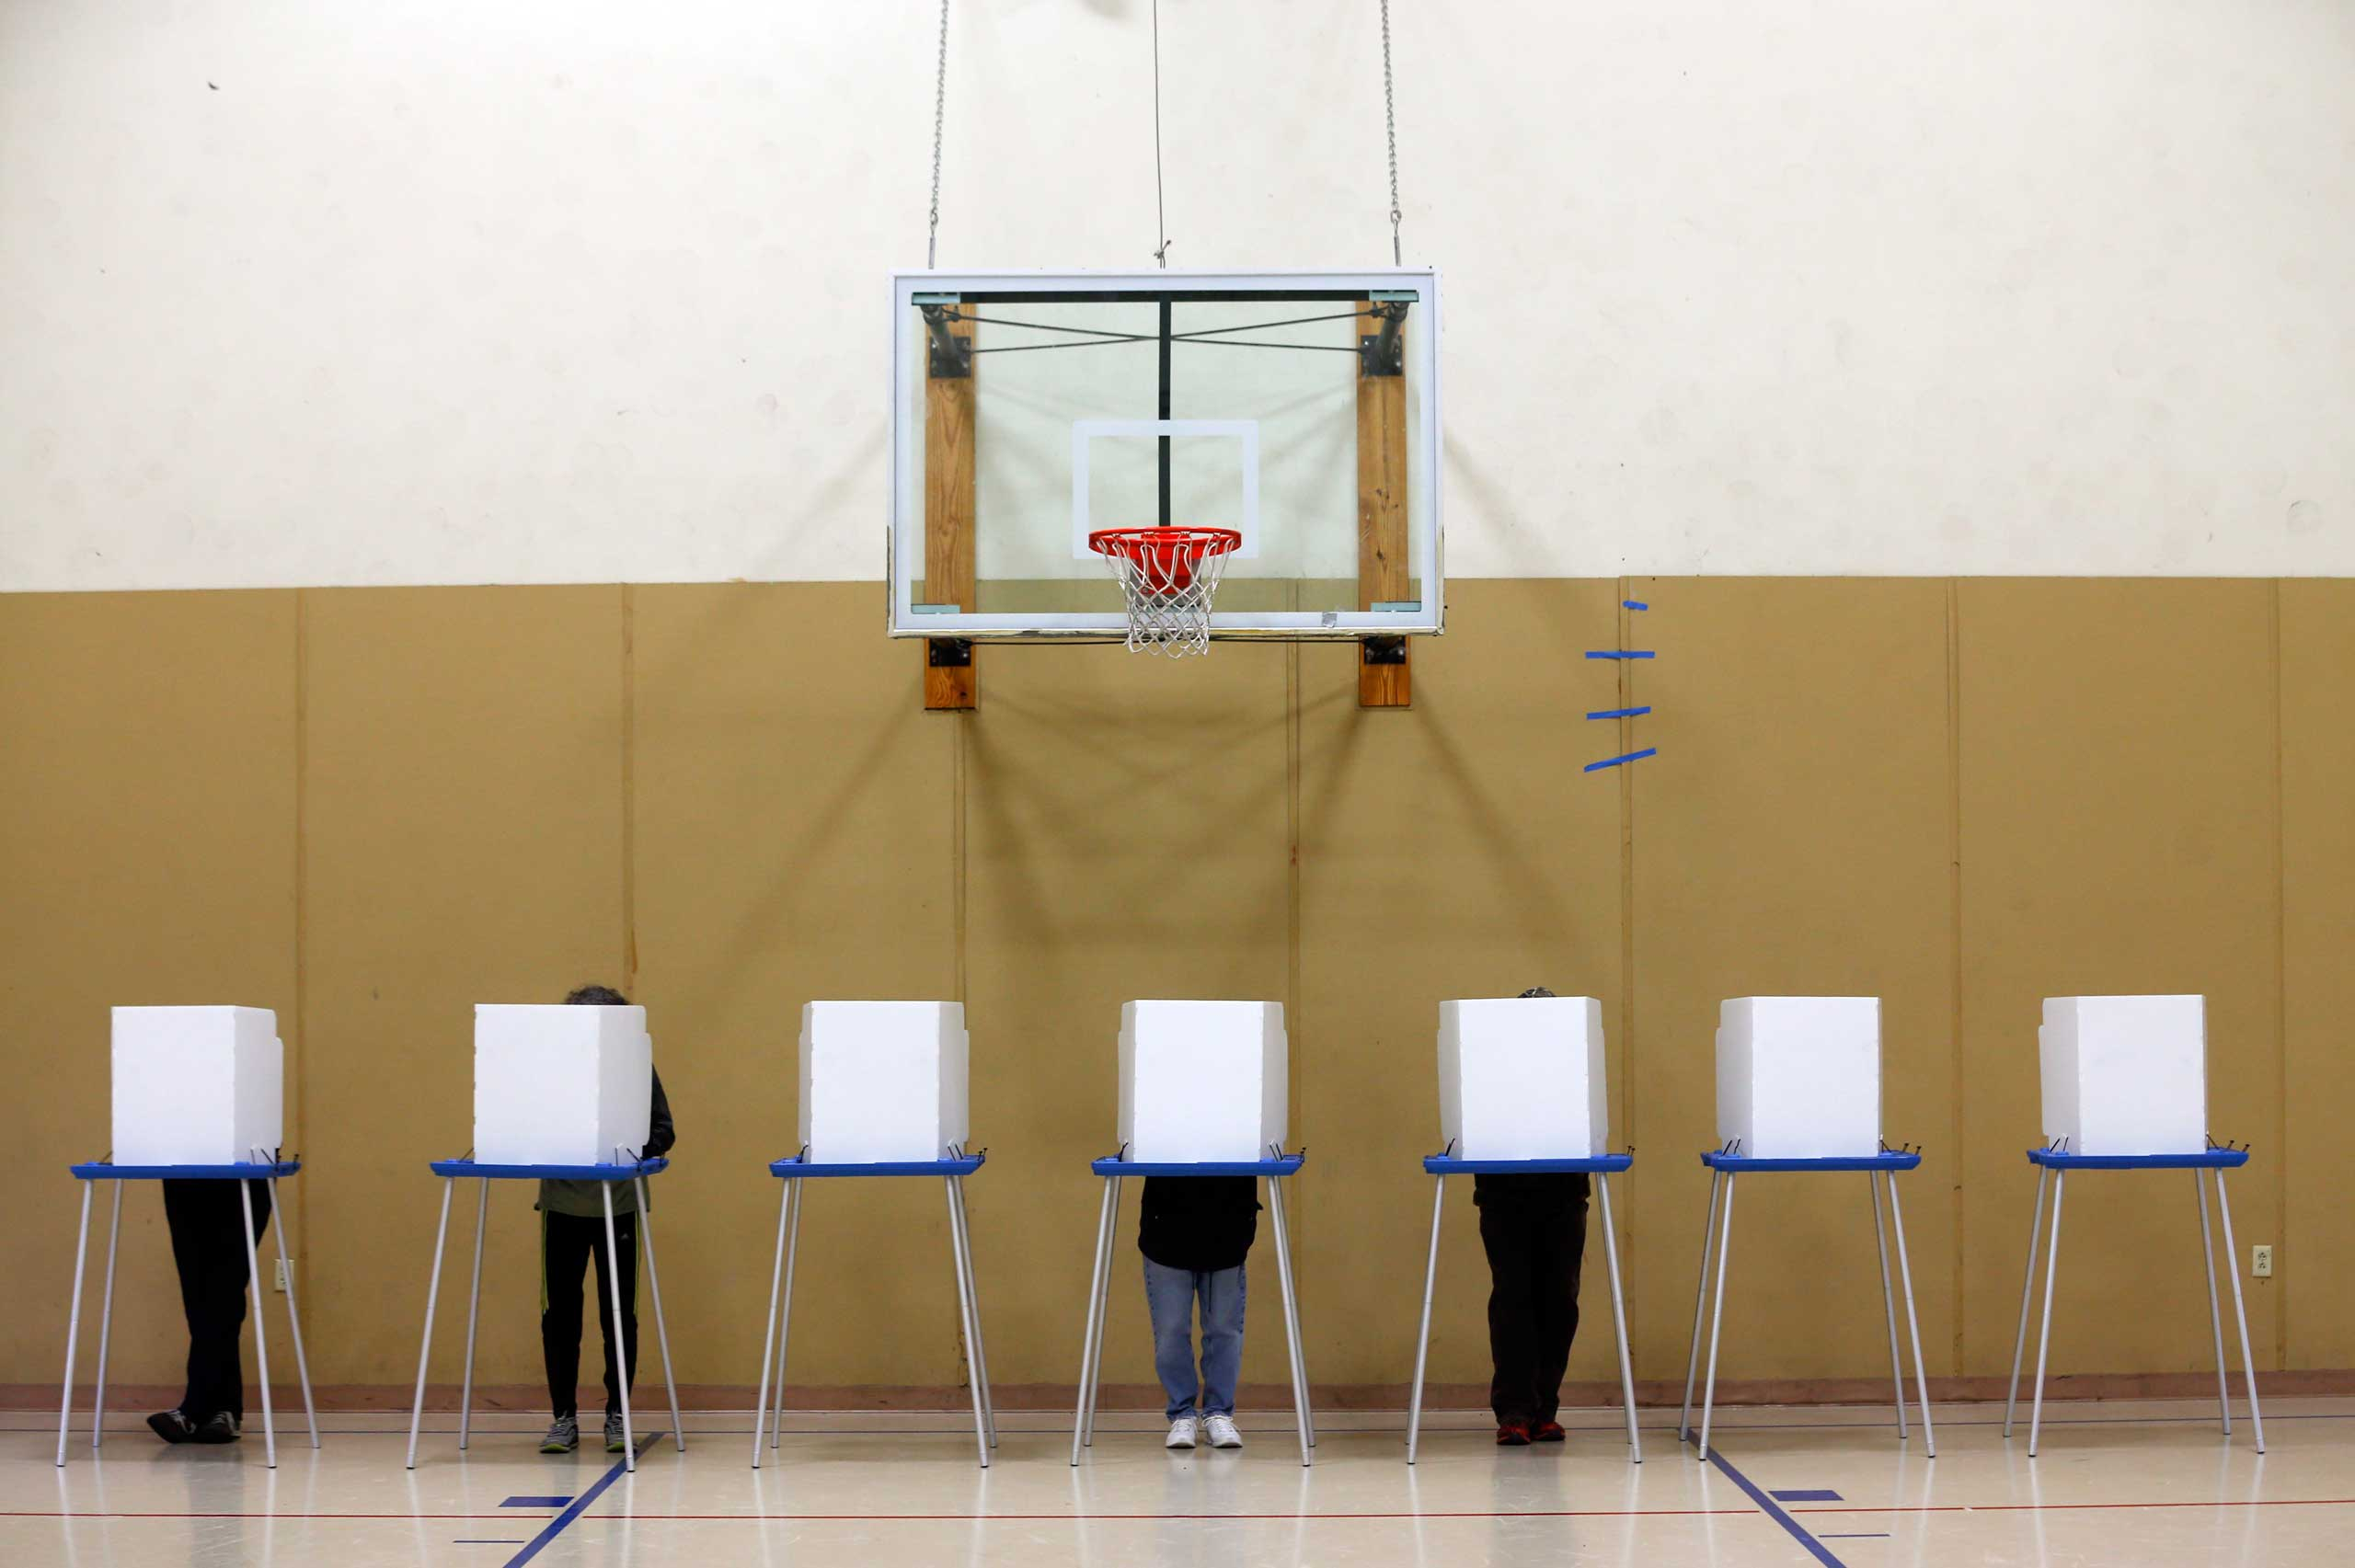 Voters fill out their ballots in a gym on election day at St. Sophia Greek Orthodox Church in Albany, N.Y. on Nov. 4.